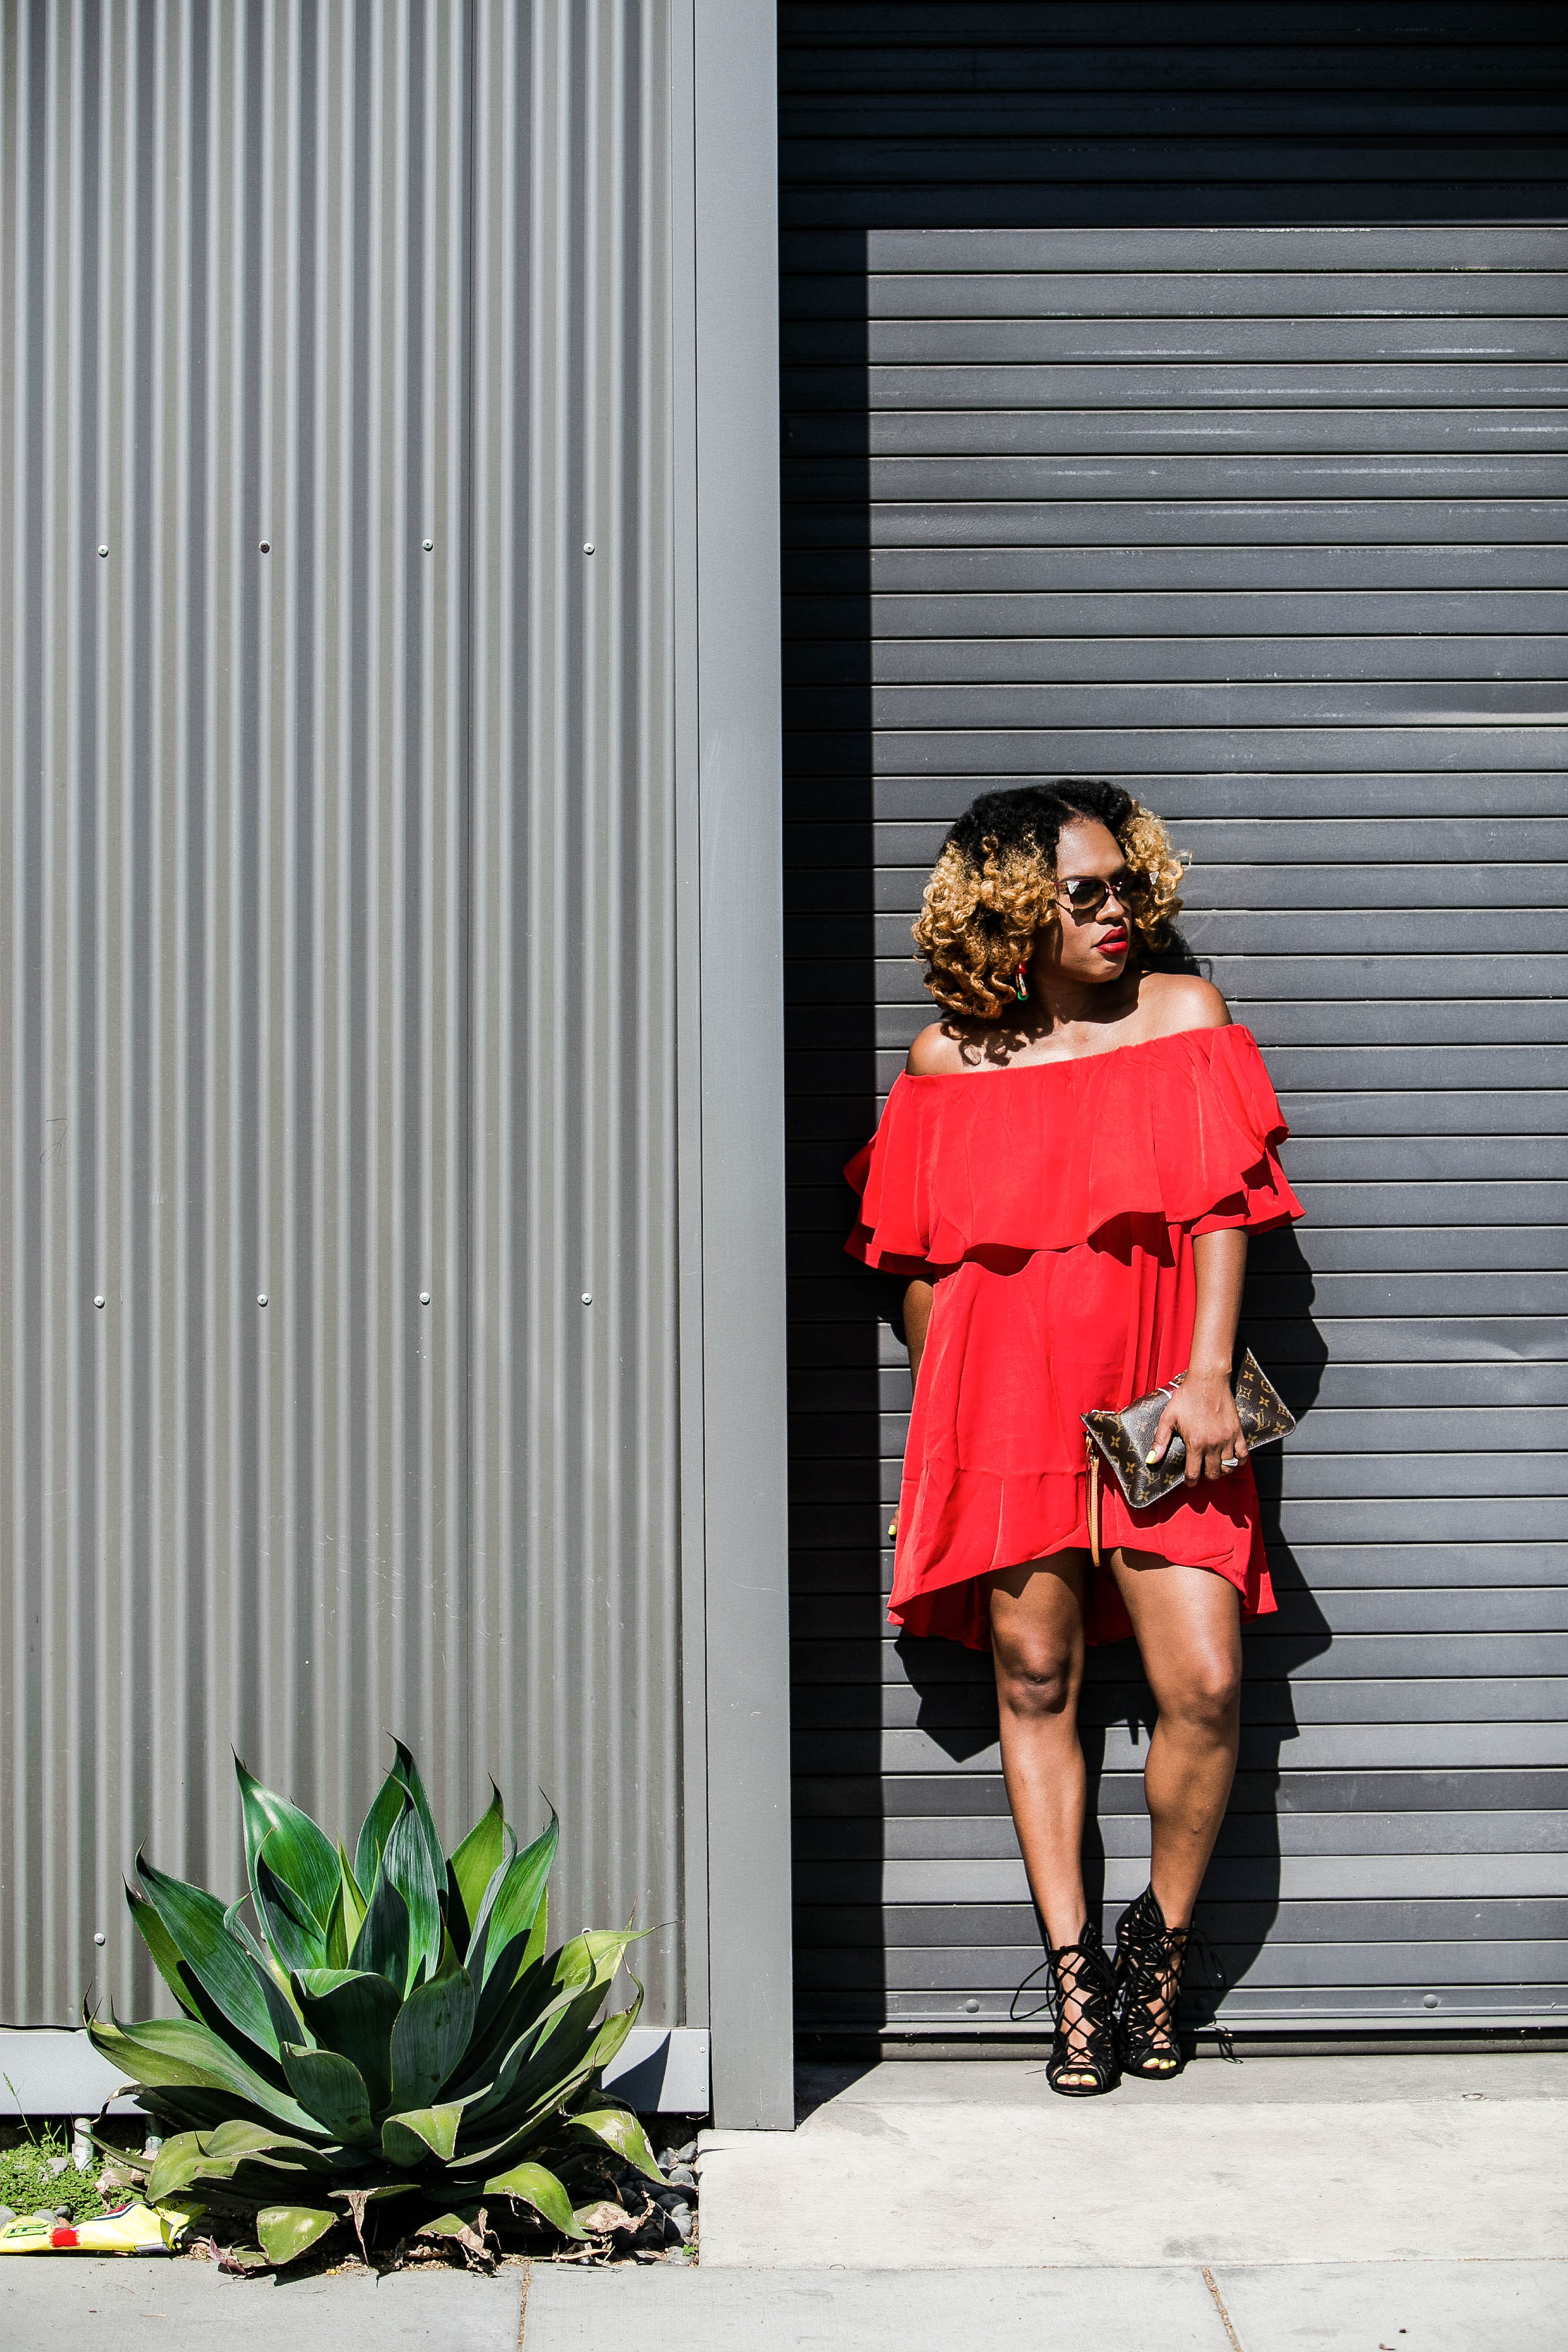 Off The Shoulder Trending in Red - https://thehautemommie.com/lady-in-the-red-dress/